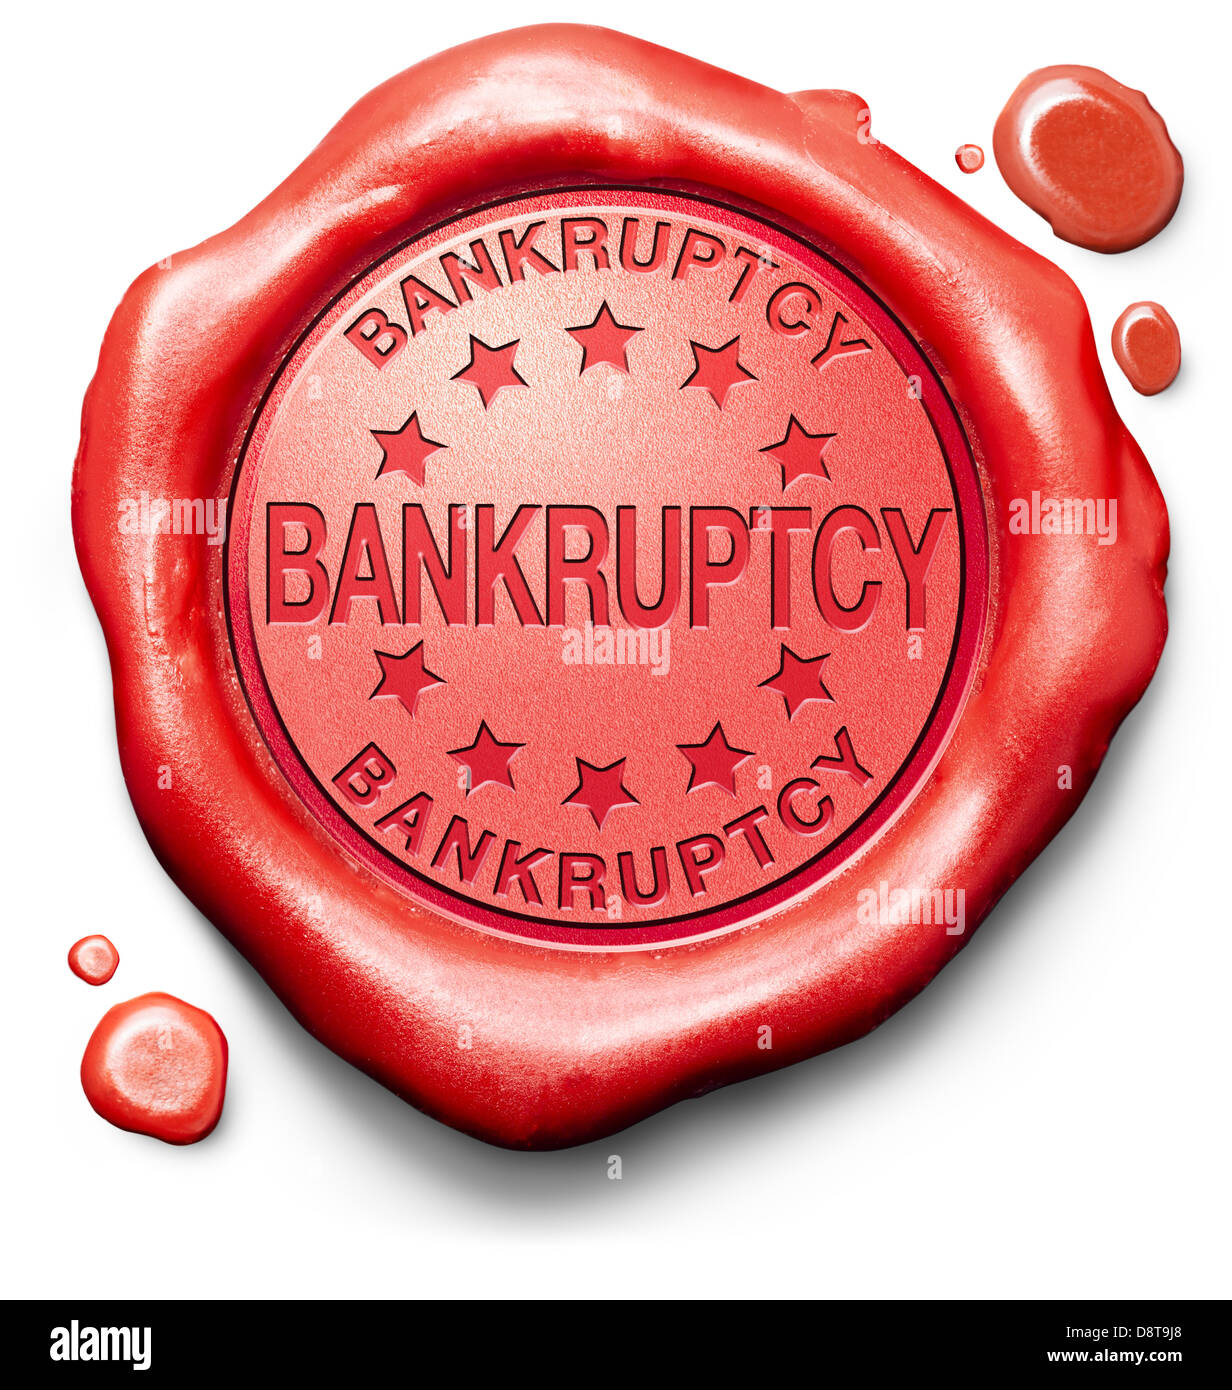 bankruptcy law or court personal or business bankrupt notice debt relief red label icon or stamp - Stock Image